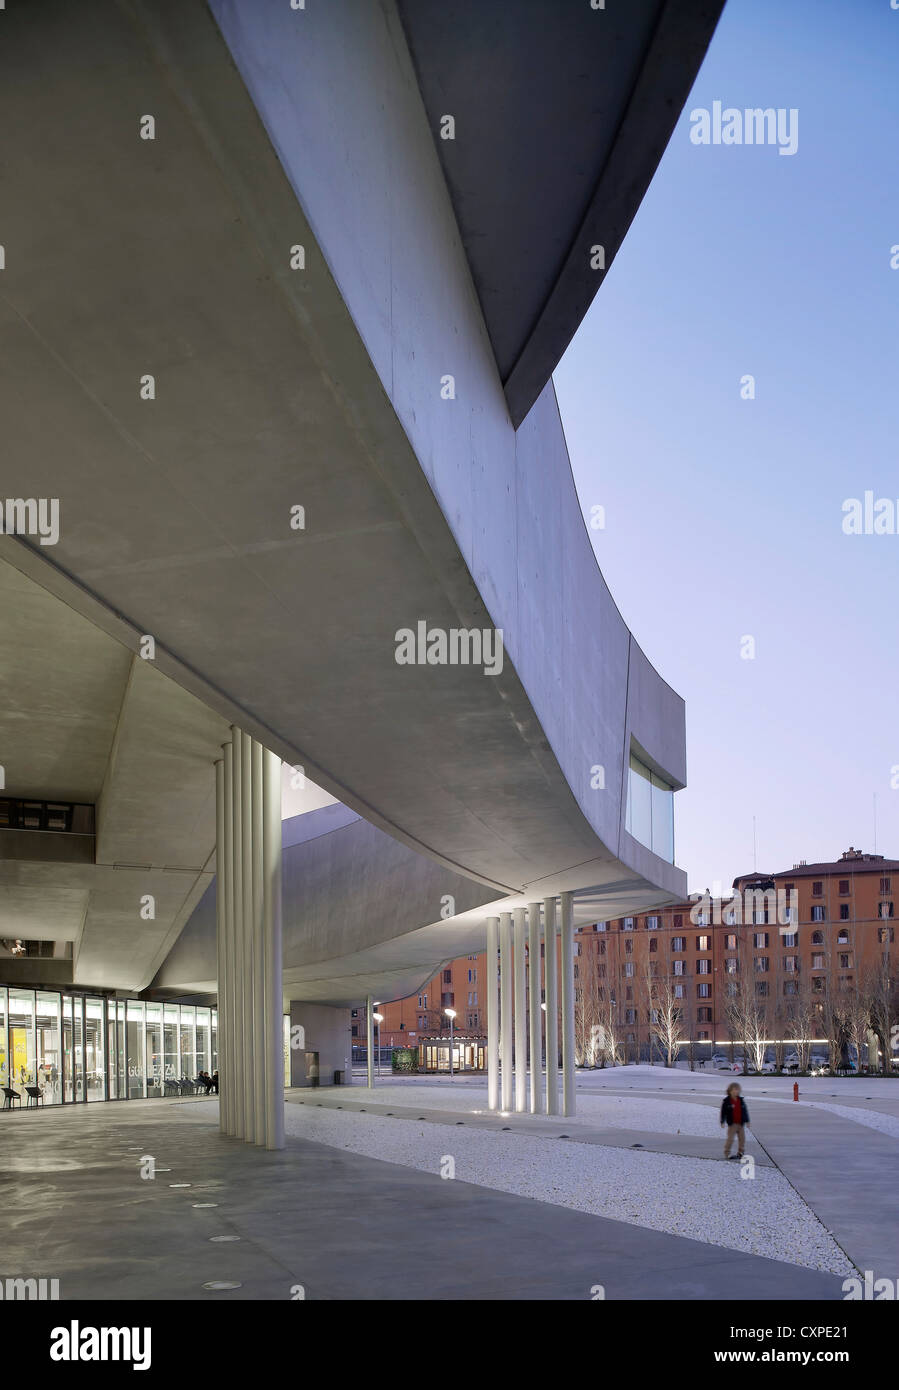 MAXXI – National Museum of the 21st Century Arts, Rome, Italy. Architect: Zaha Hadid Architects, 2009. Dusk exterior. - Stock Image